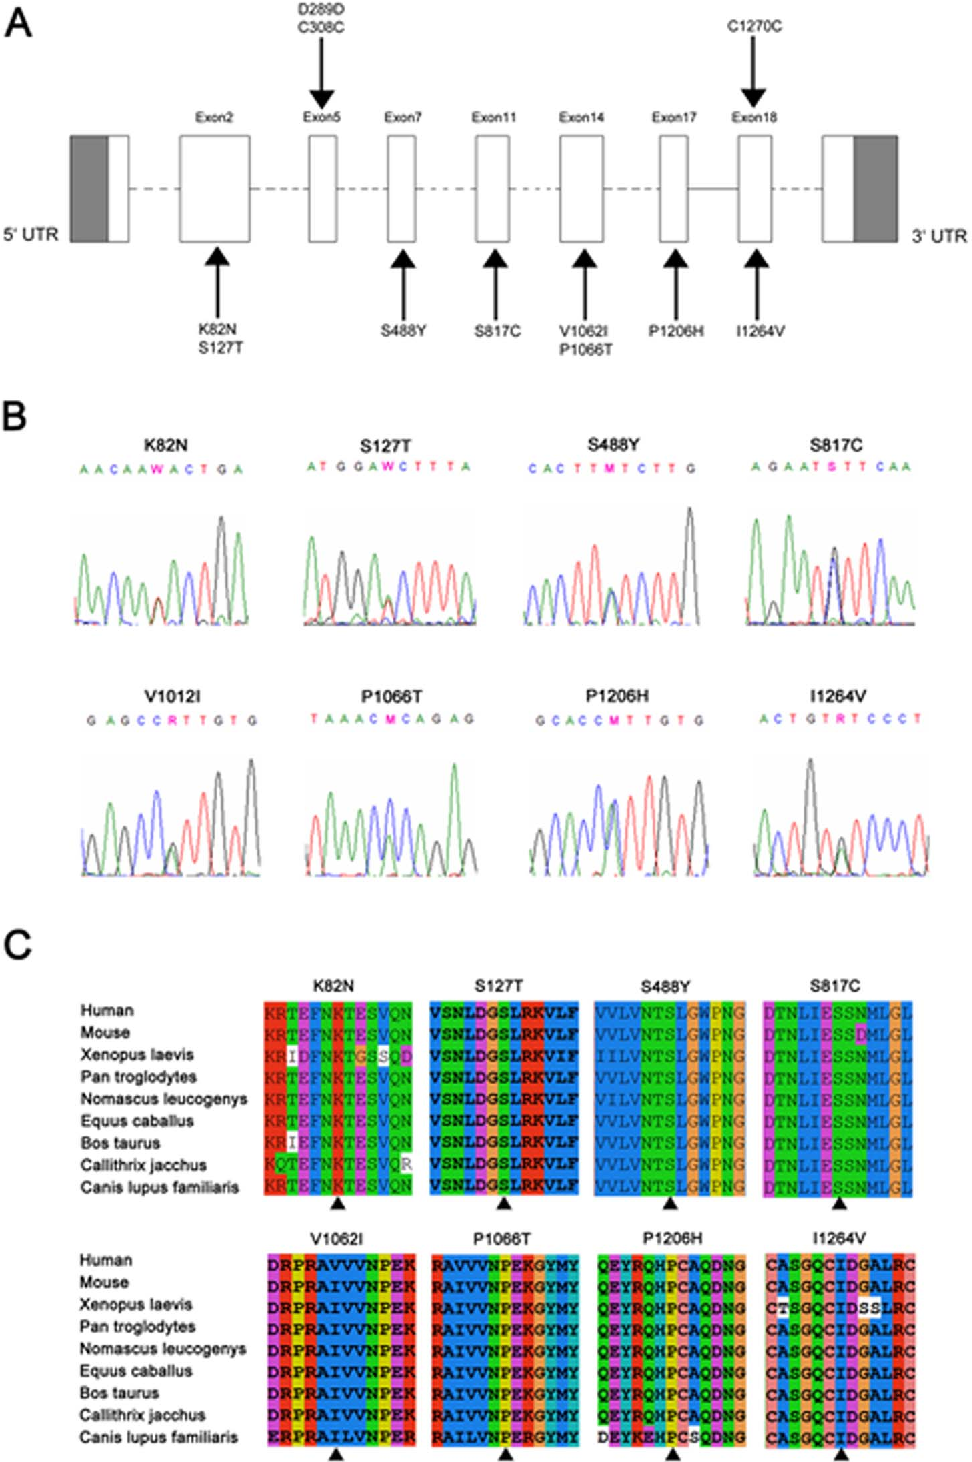 Figure 1. Genomic structure of the exons encoding the open reading frame of LRP6 and identified mutations or polymorphisms. A